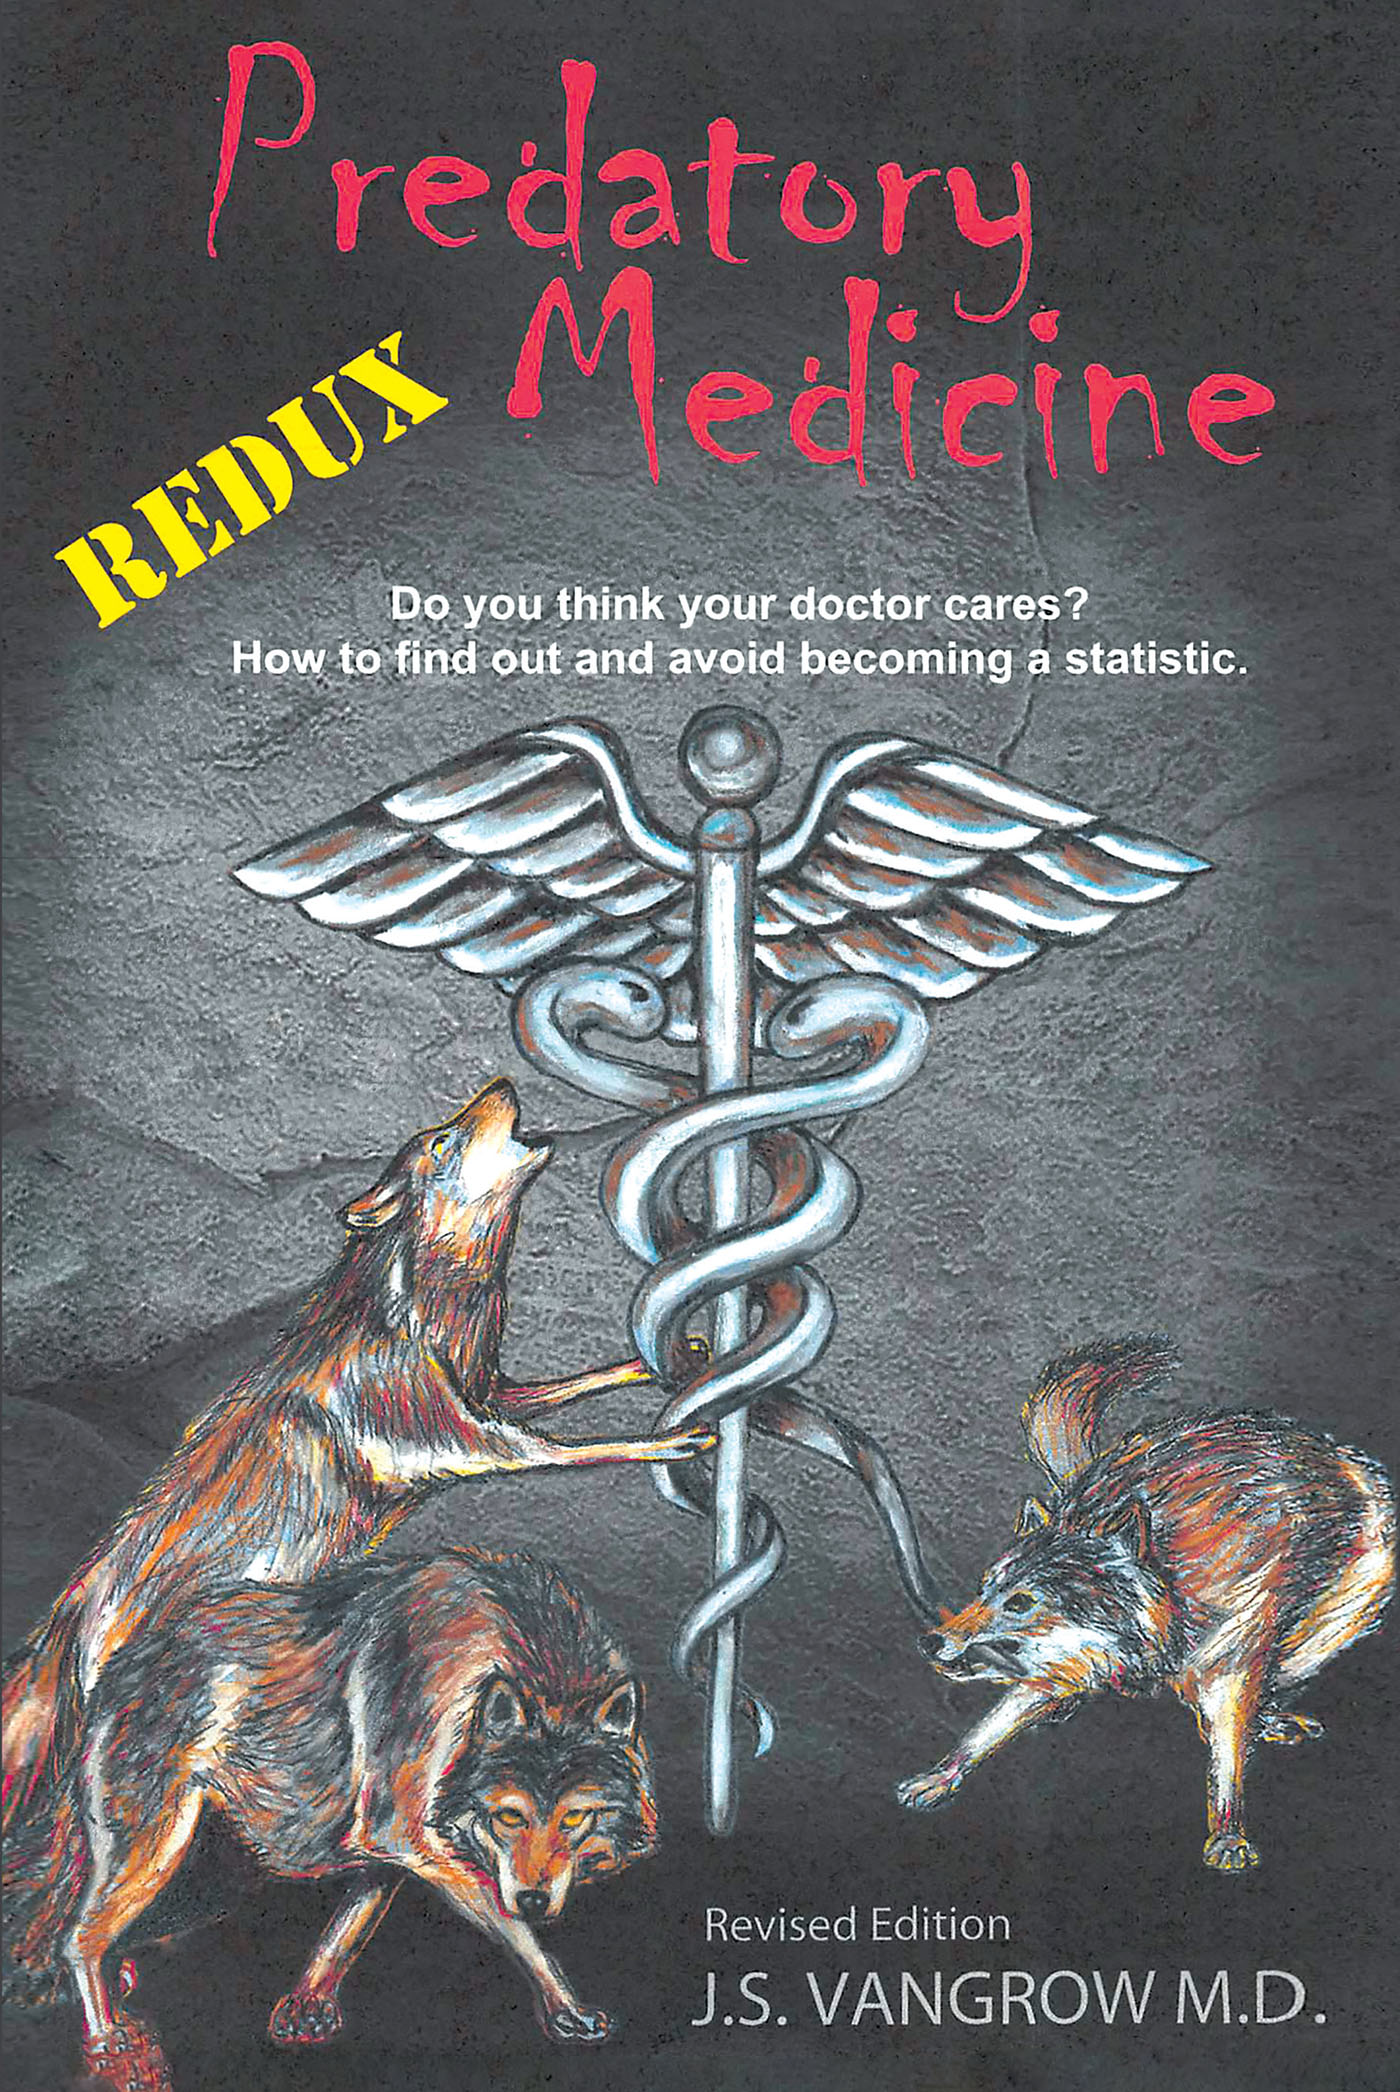 A Retired Physician With Board Certification In Internal Medicine And Cardiovascular Disease Has Completed His Most Recent Book Predatory